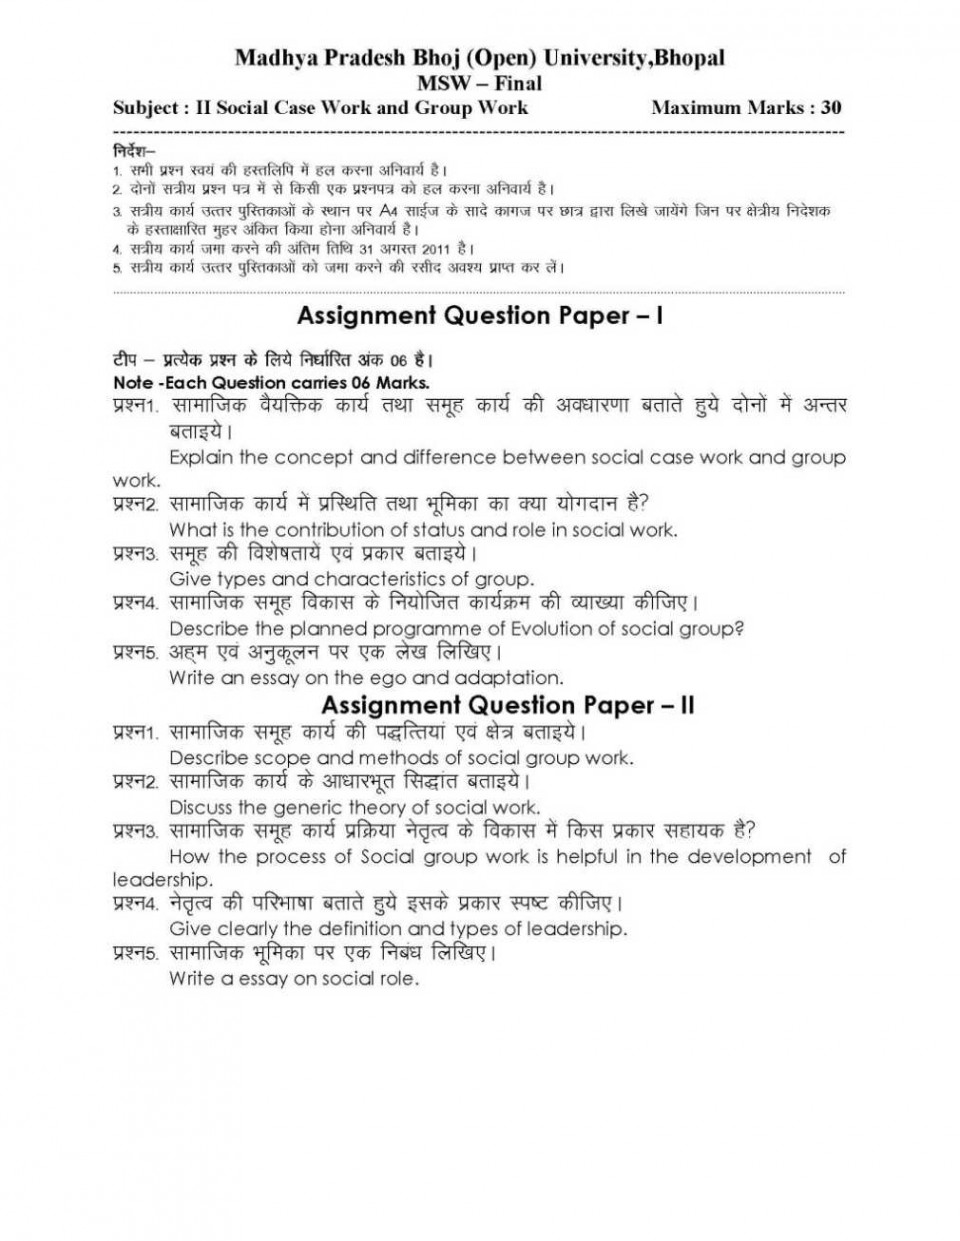 012 Bhoj University Bhopal Msw Definition Essays Surprising Essay Examples Topics Family Pdf 960